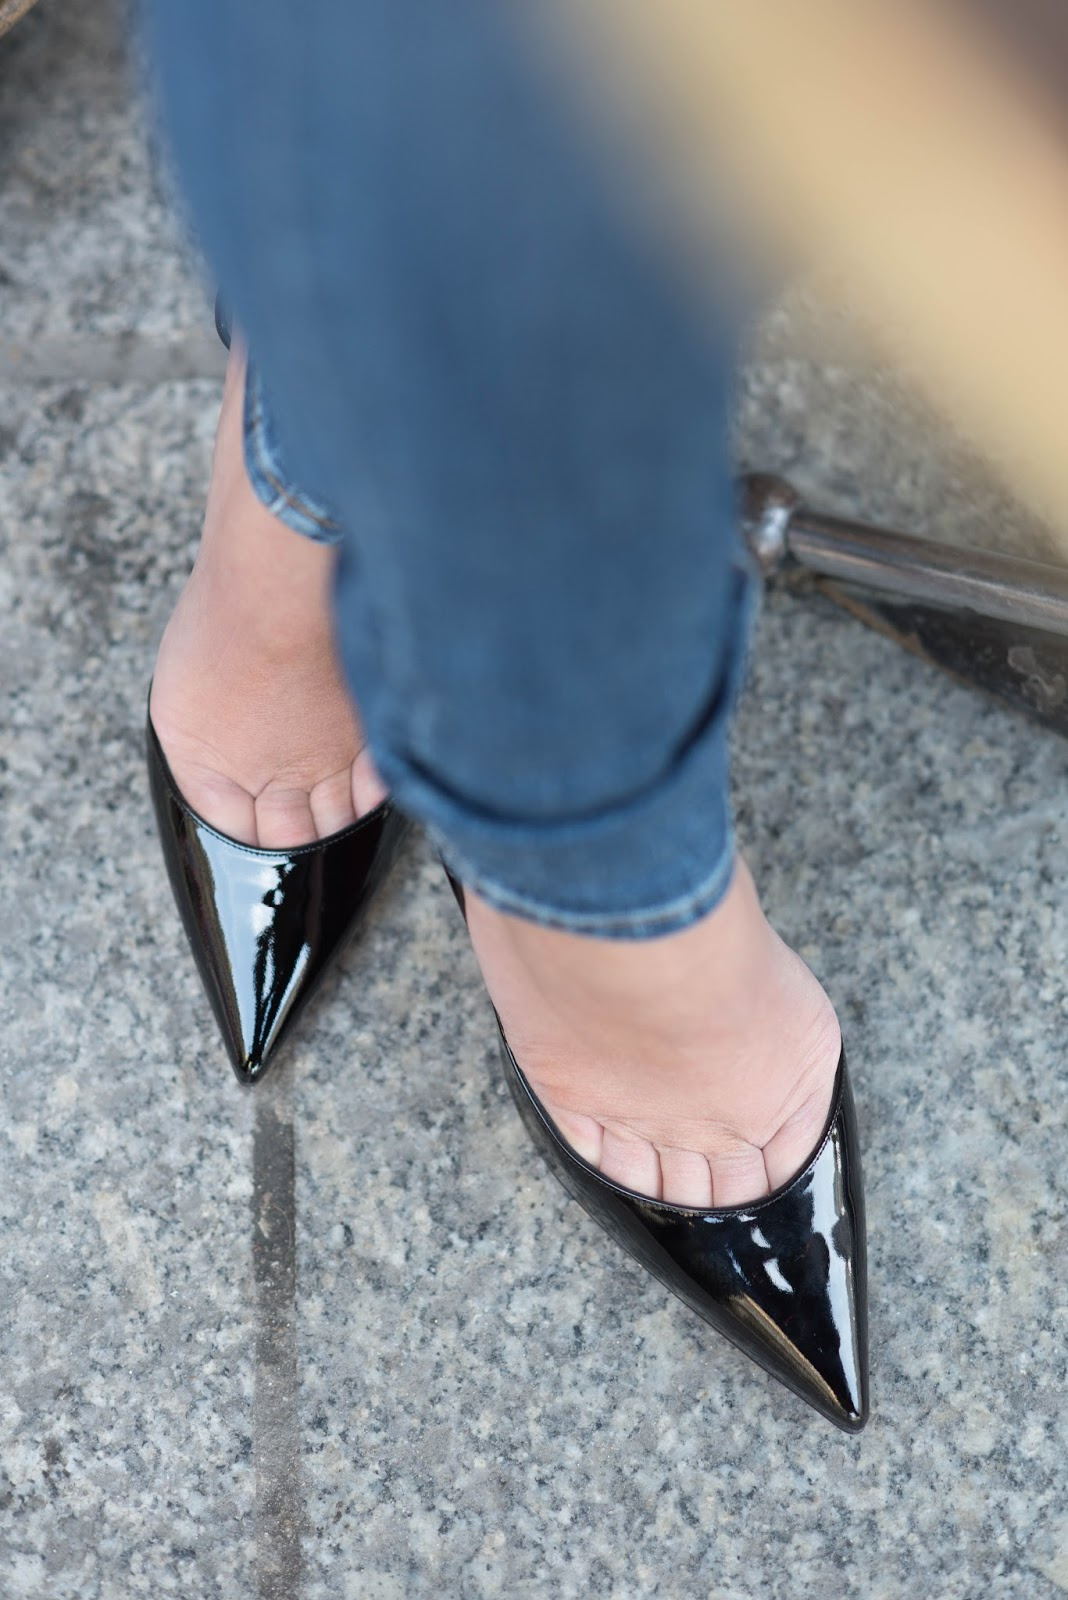 coco and vera, top paris fashion blog, christian louboutin, iriza pumps, black patent, shoe of the day, skinny jeans, the castings, denim, le nemours